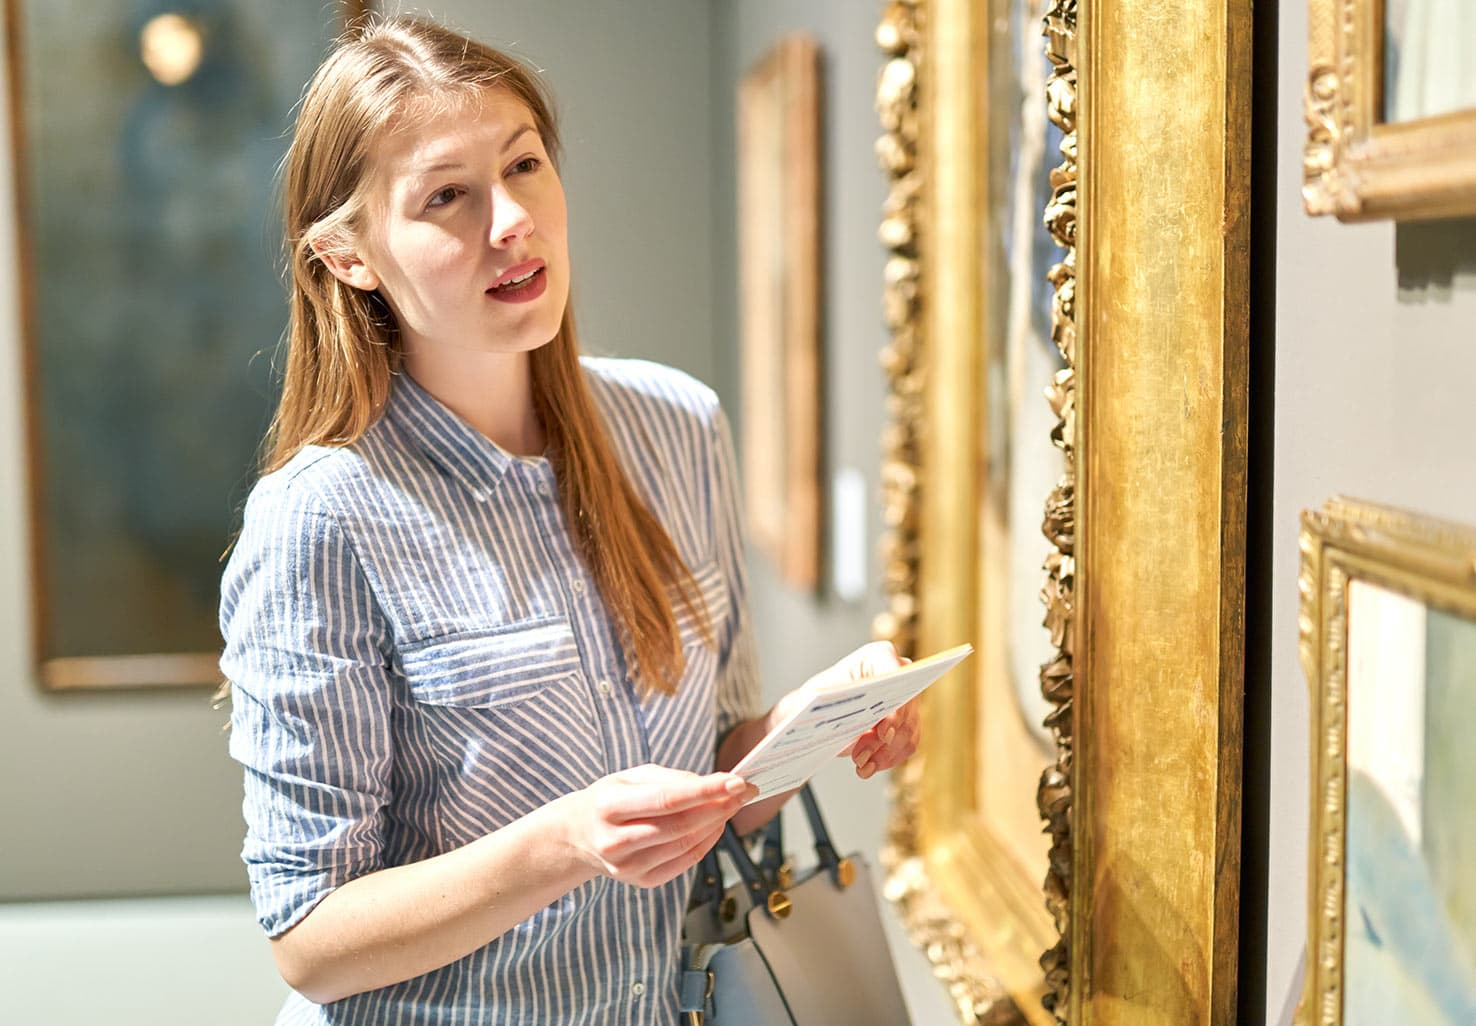 Woman looking at art in an art museum